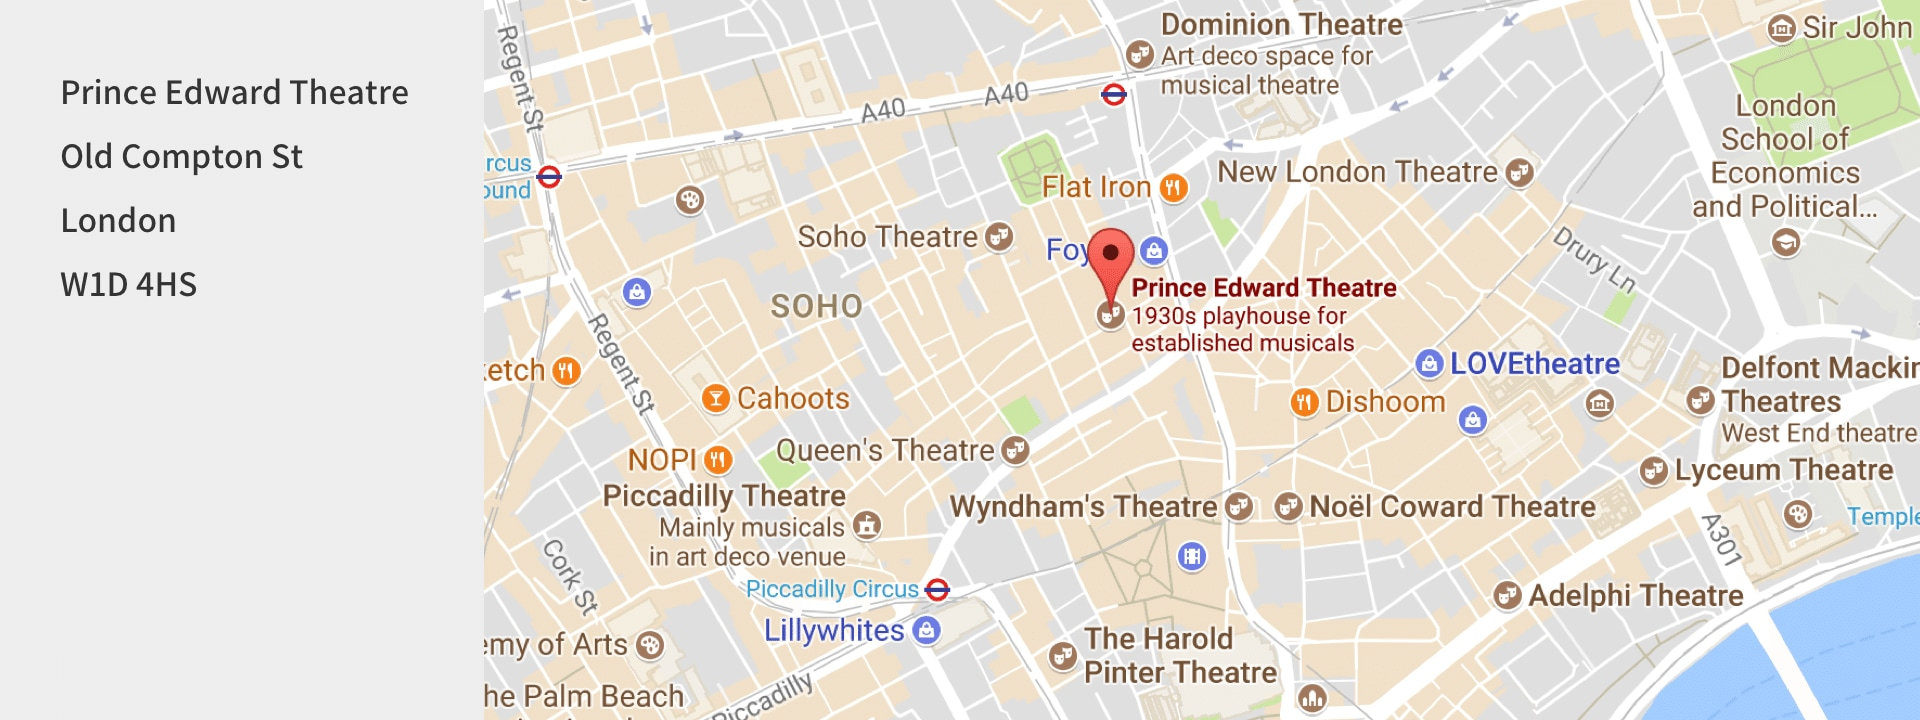 West End Theatres London Map.Aladdin Tickets Prince Edward Theatre Book With Disney